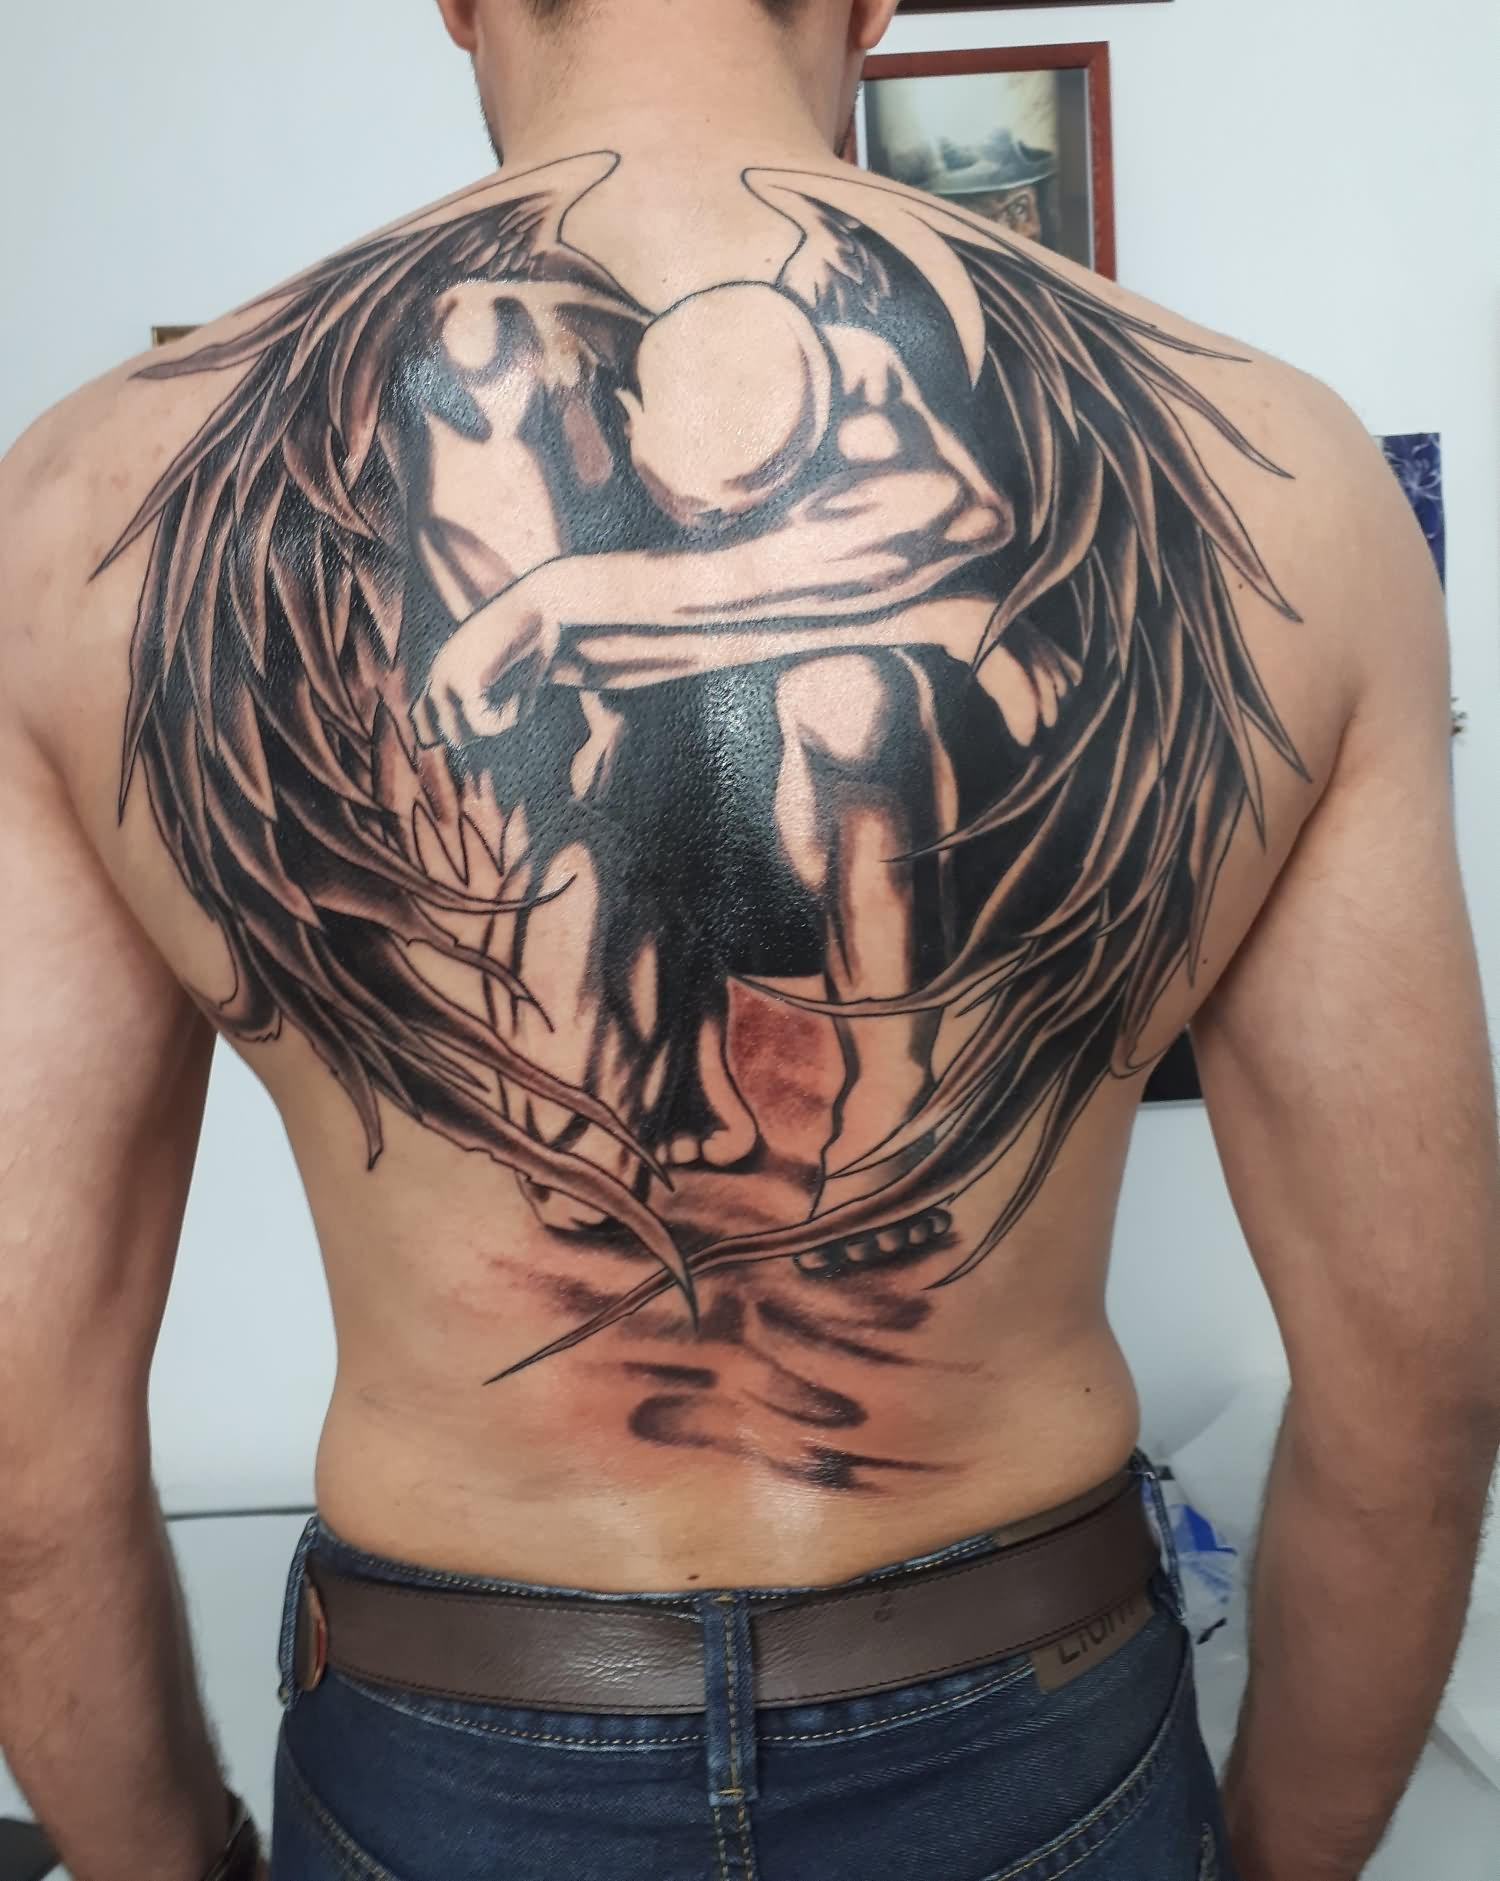 Fallen angel tattoo on back